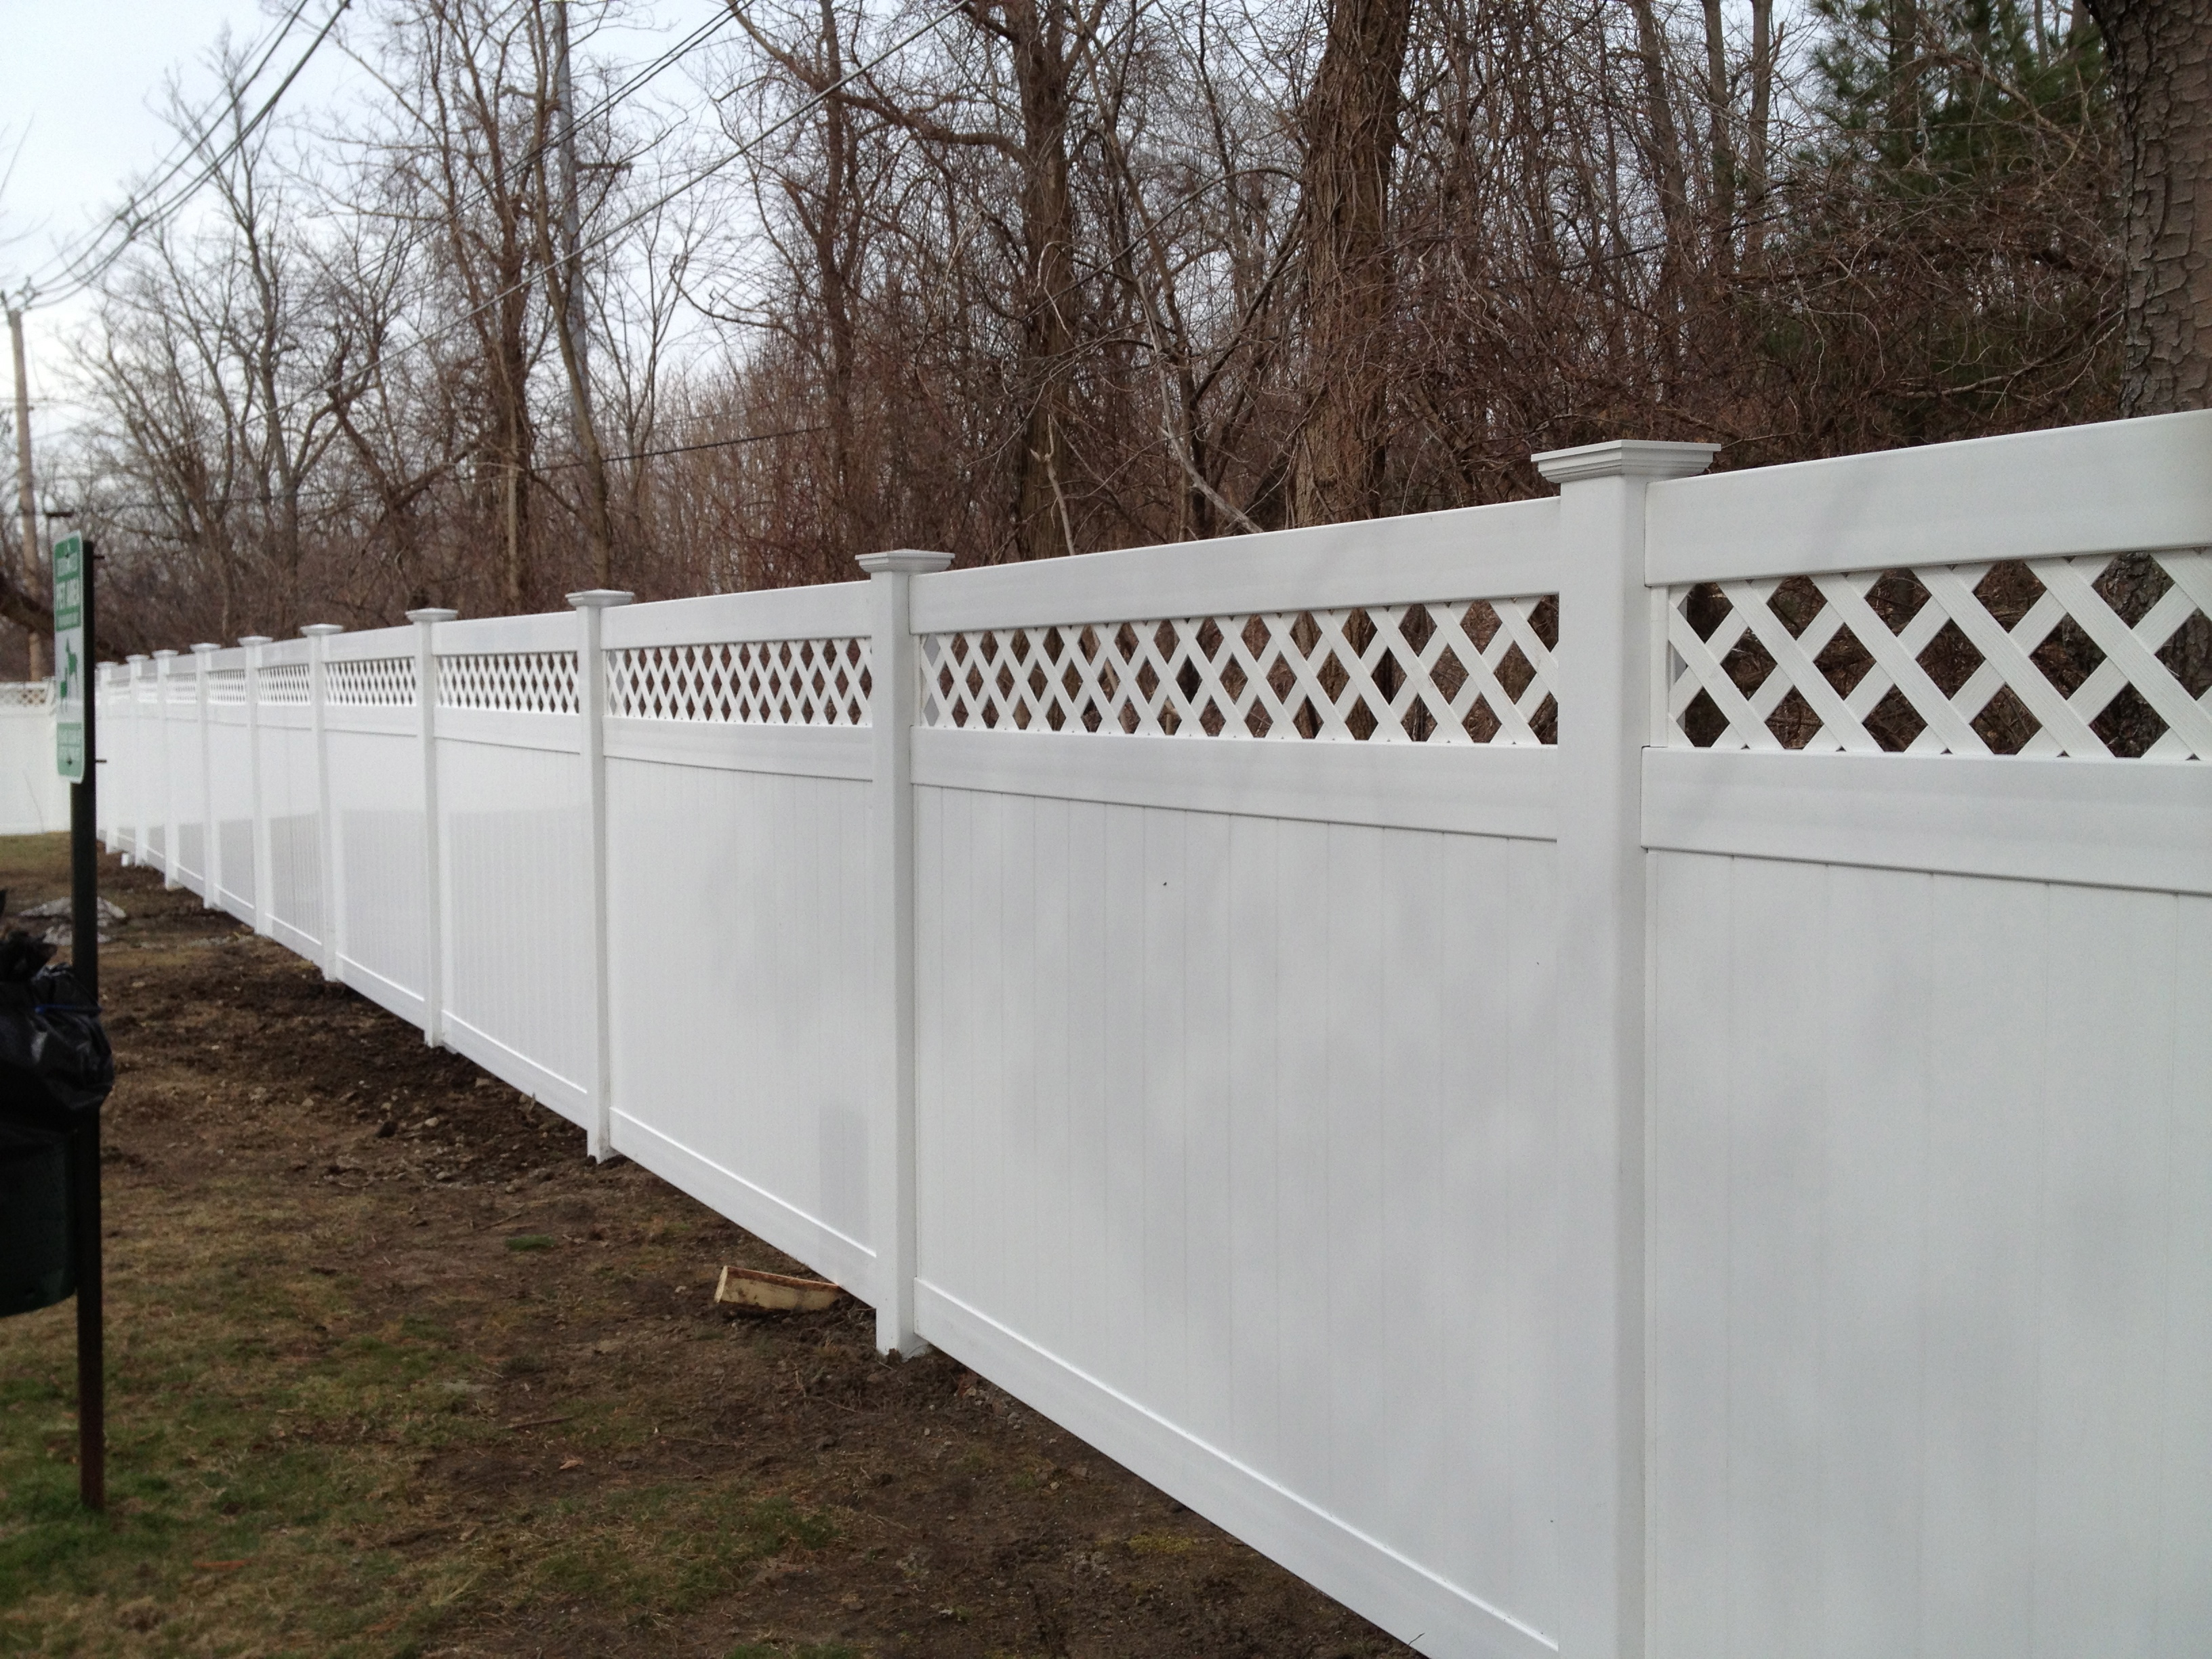 Vinyl Gallery   Click to view all photos. Sentry Fence  Vinyl Fencing Provider Company   Sentry Fence   Iron